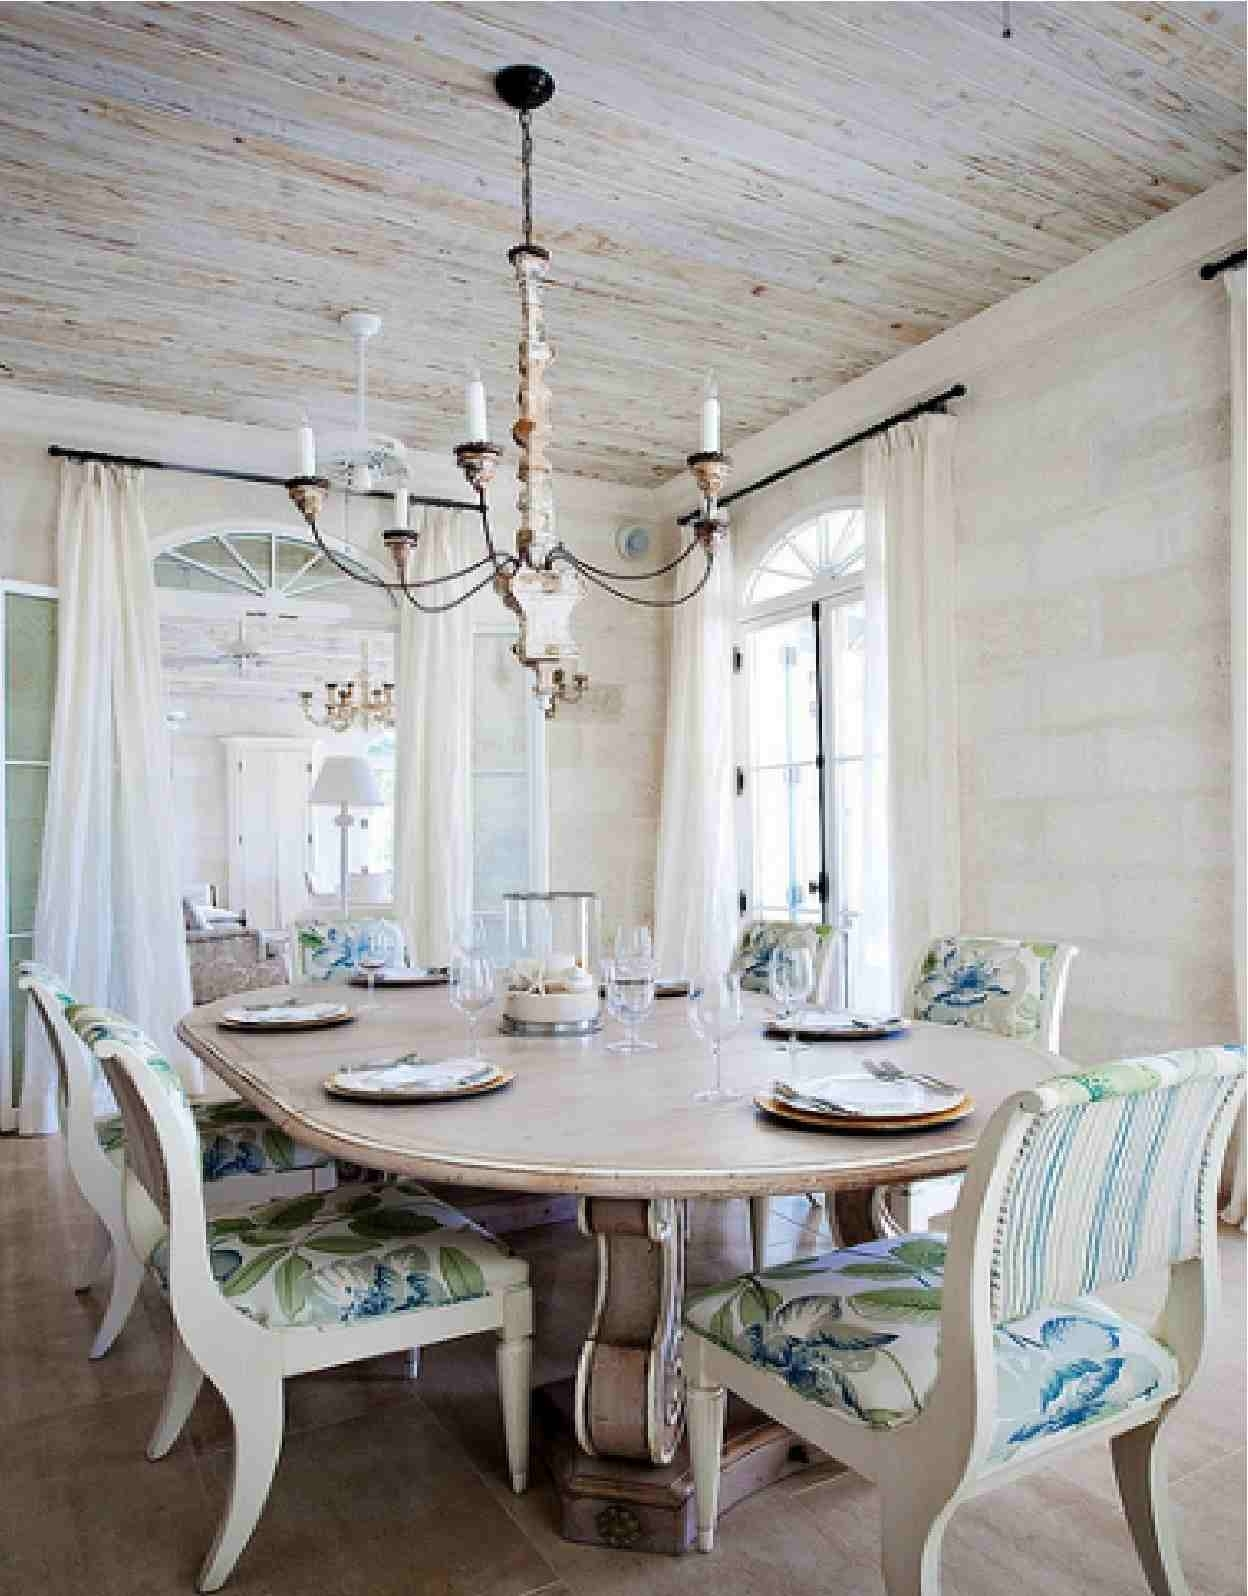 Country Chic Chandelier Regarding Trendy Chandeliers Design Marvelous Lighting Pendulum Lights Rustic Rustic (View 10 of 20)